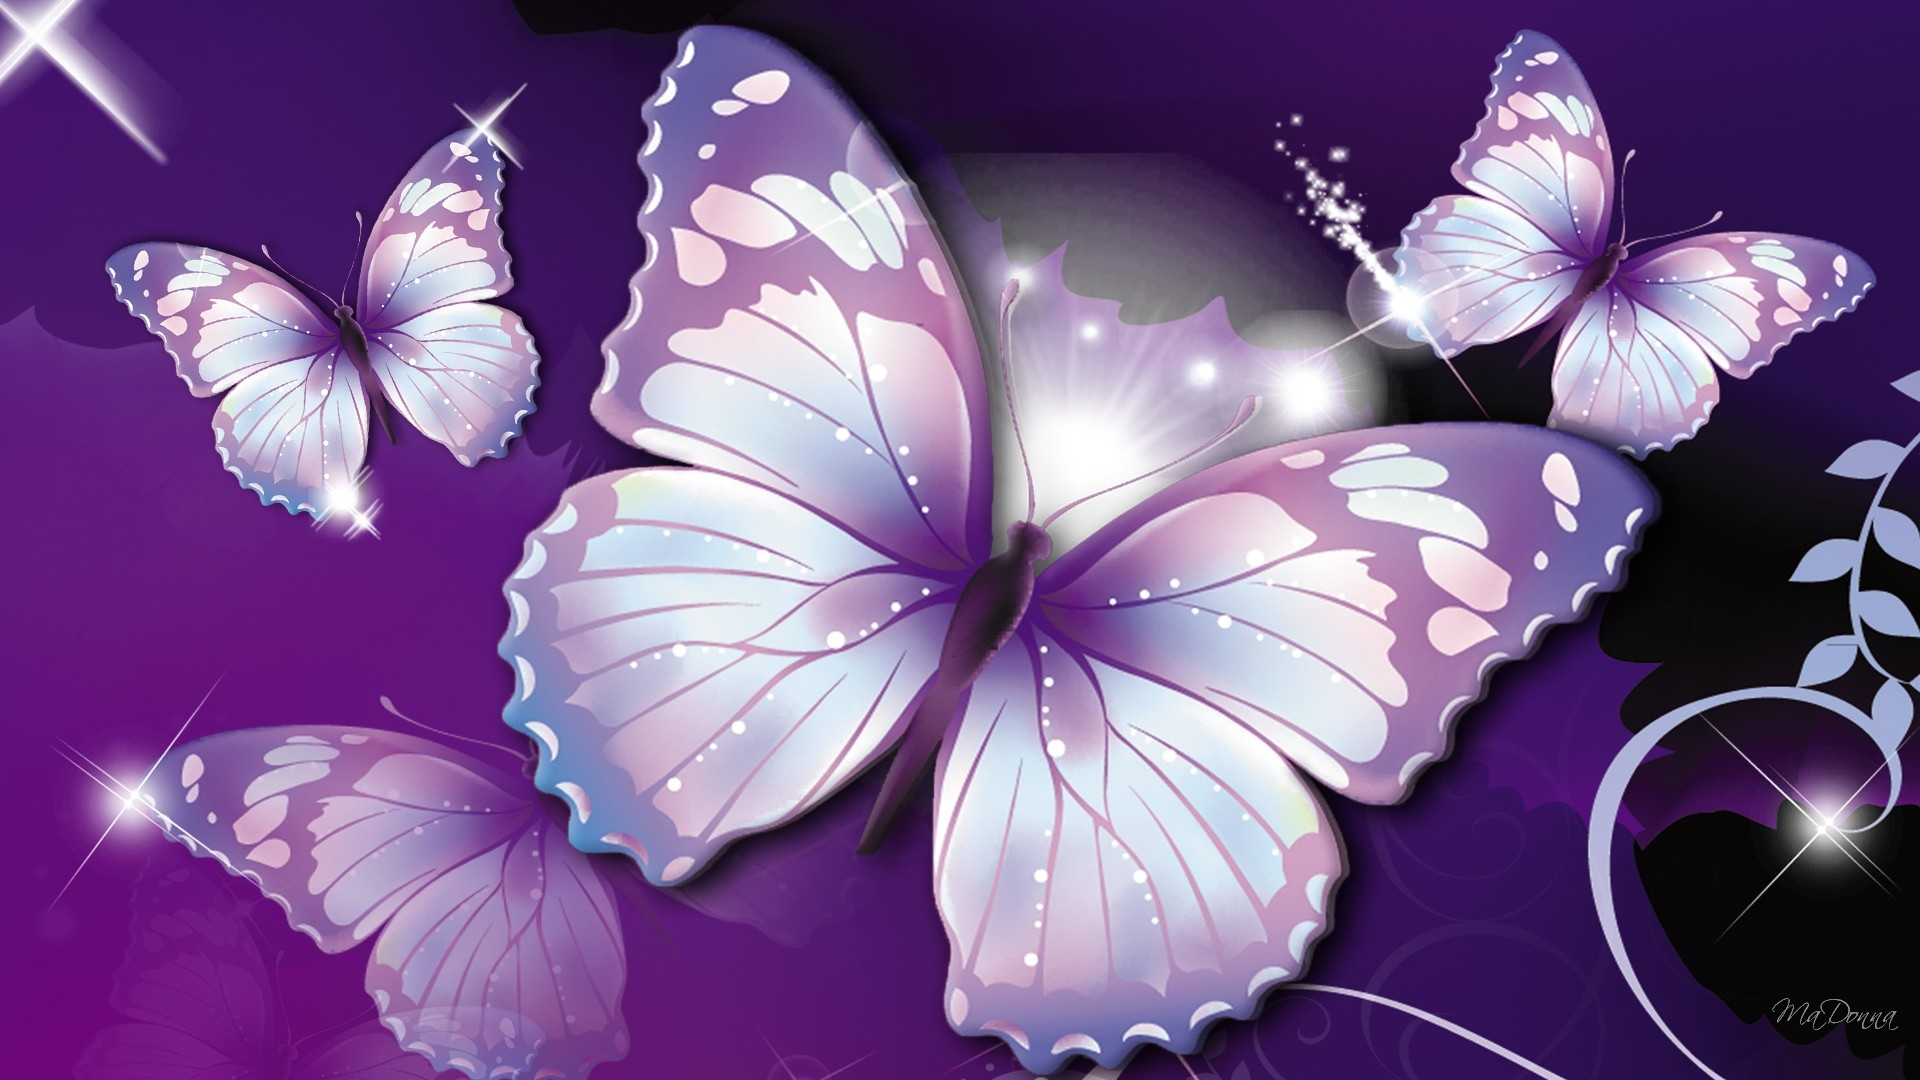 Black Butterfly Wallpaper and Images for Gt Purple